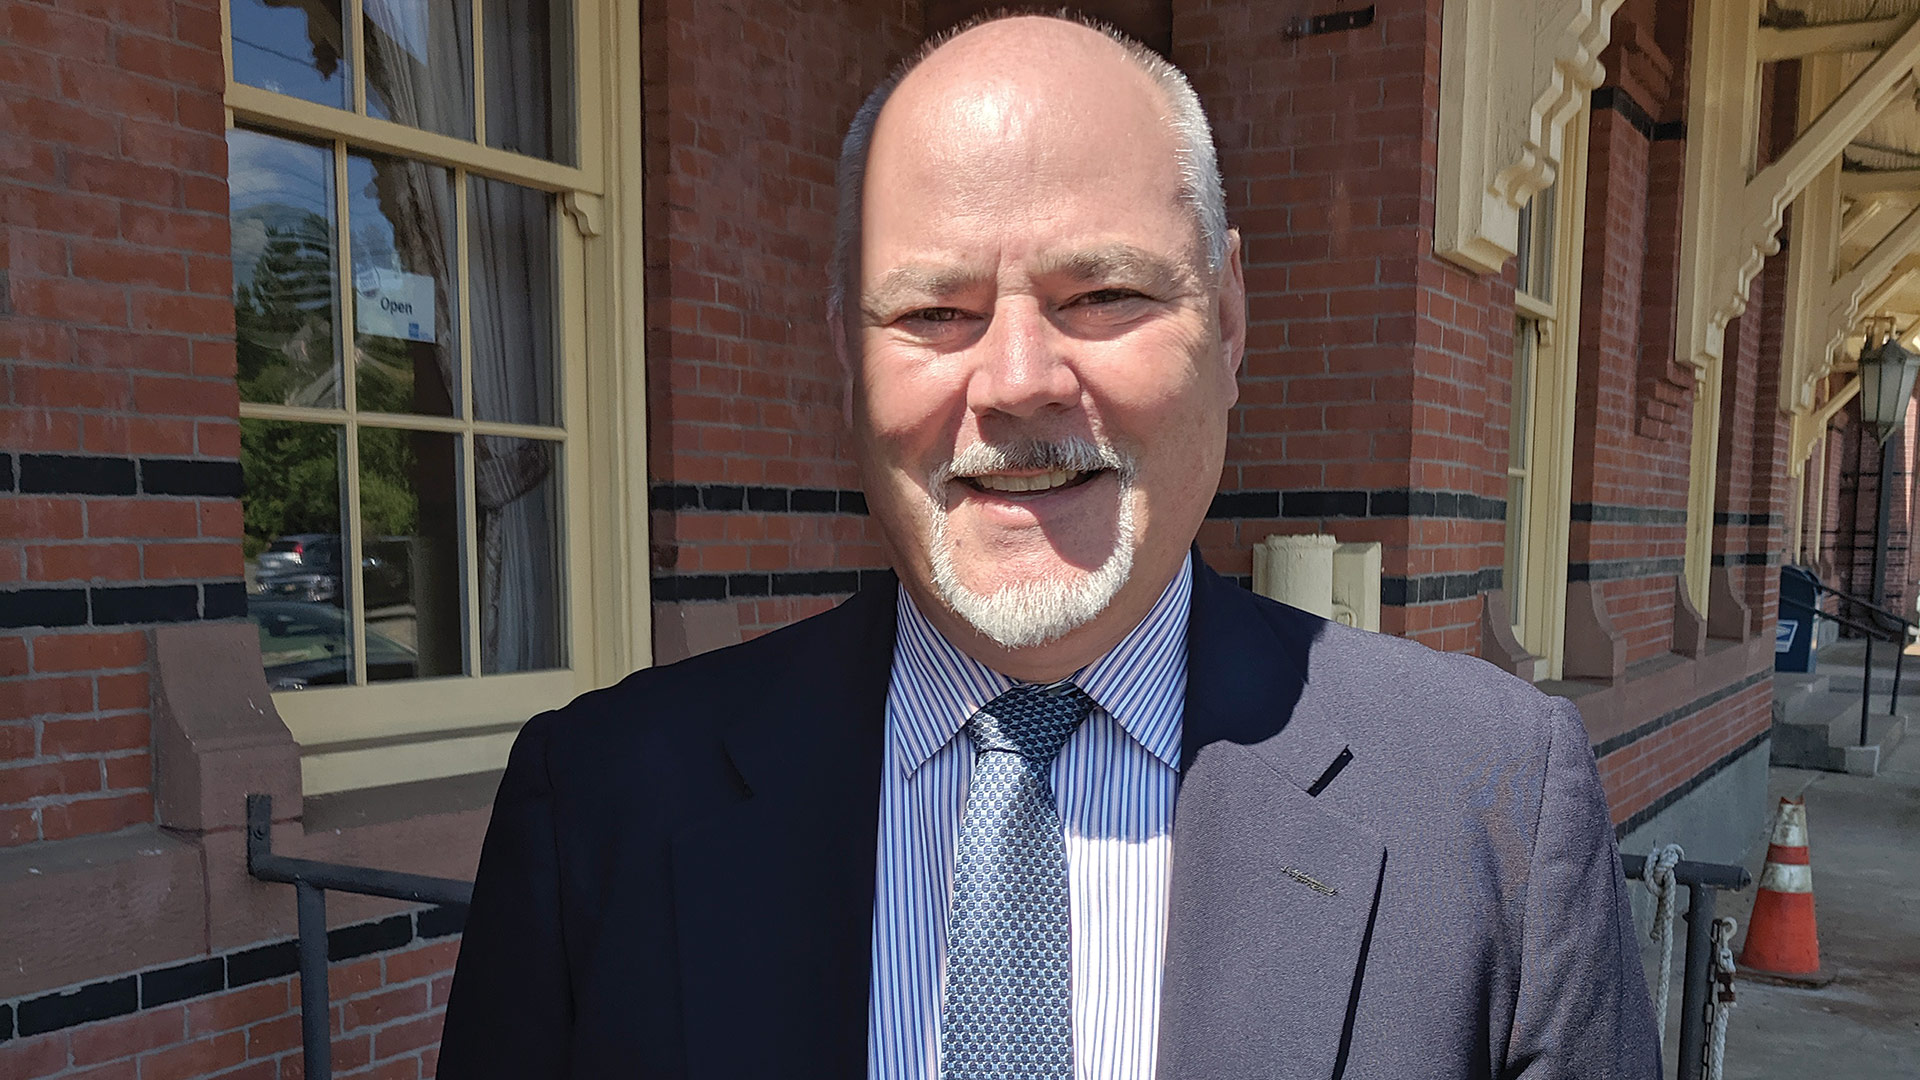 Brian Sullivan says city officials have become more adept